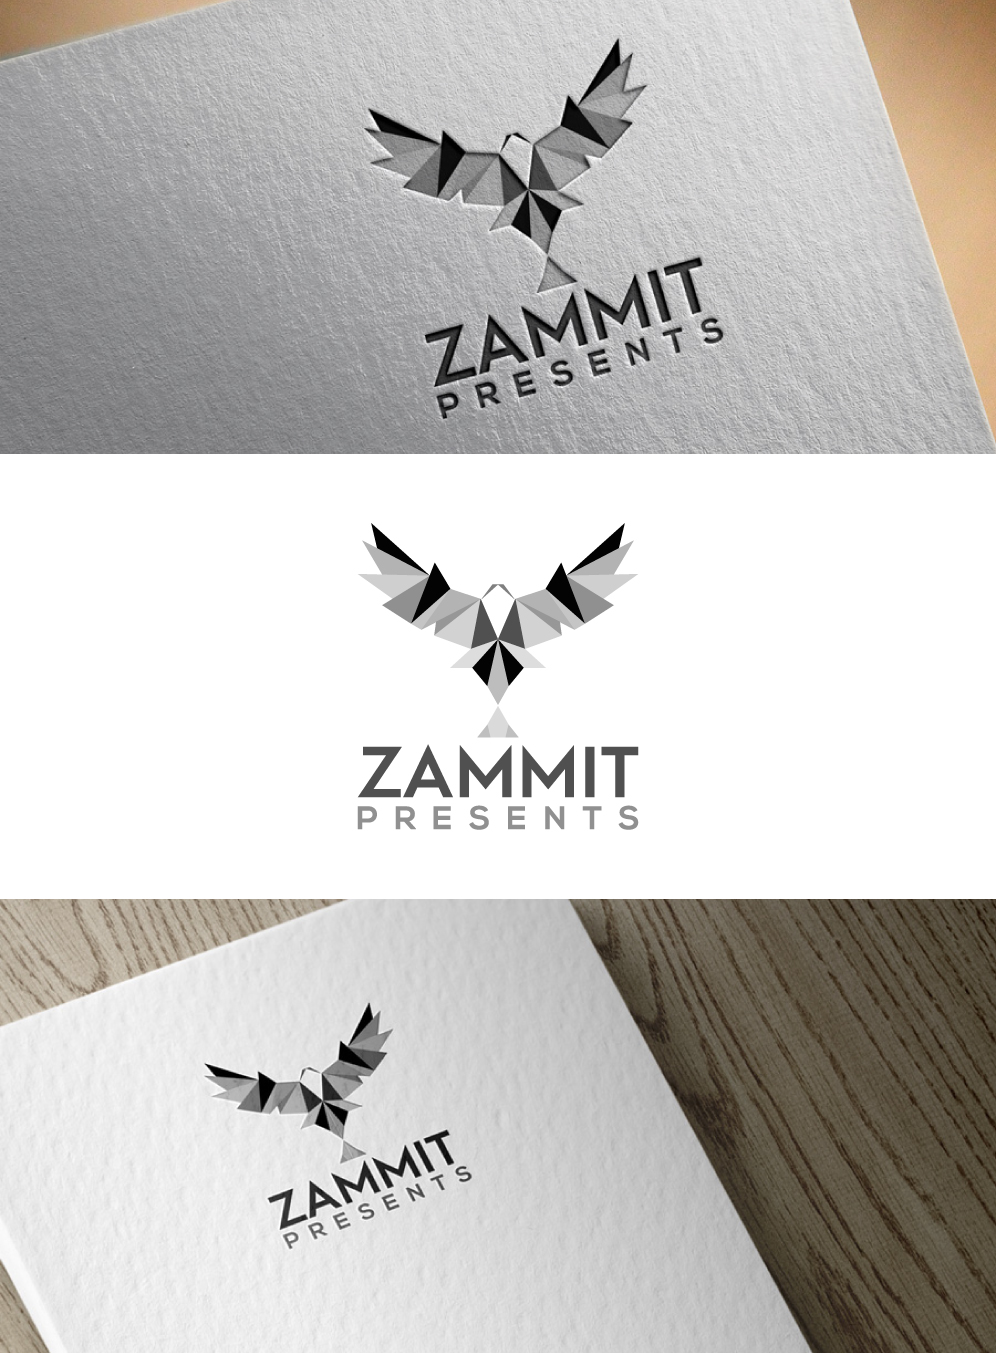 Logo Design for an Arts Events Consultancy Business by crow logo design